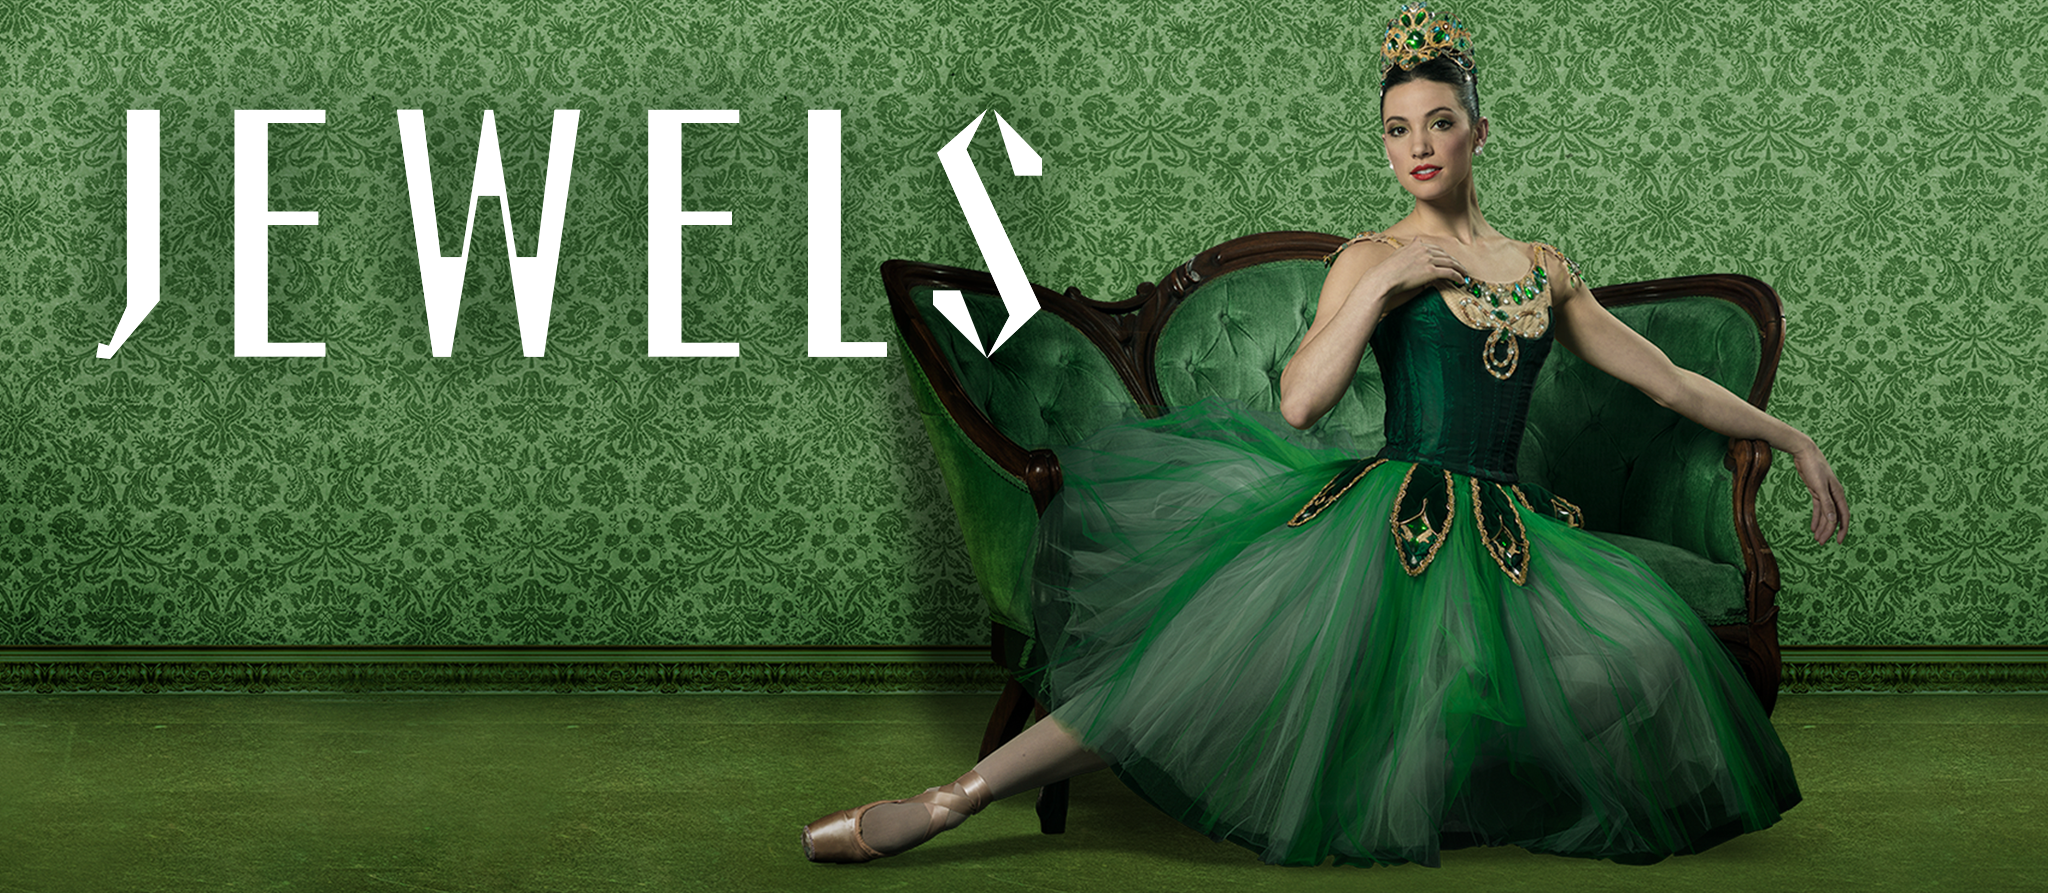 Pennsylvania Ballet Jewels Dancer photo and title graphic